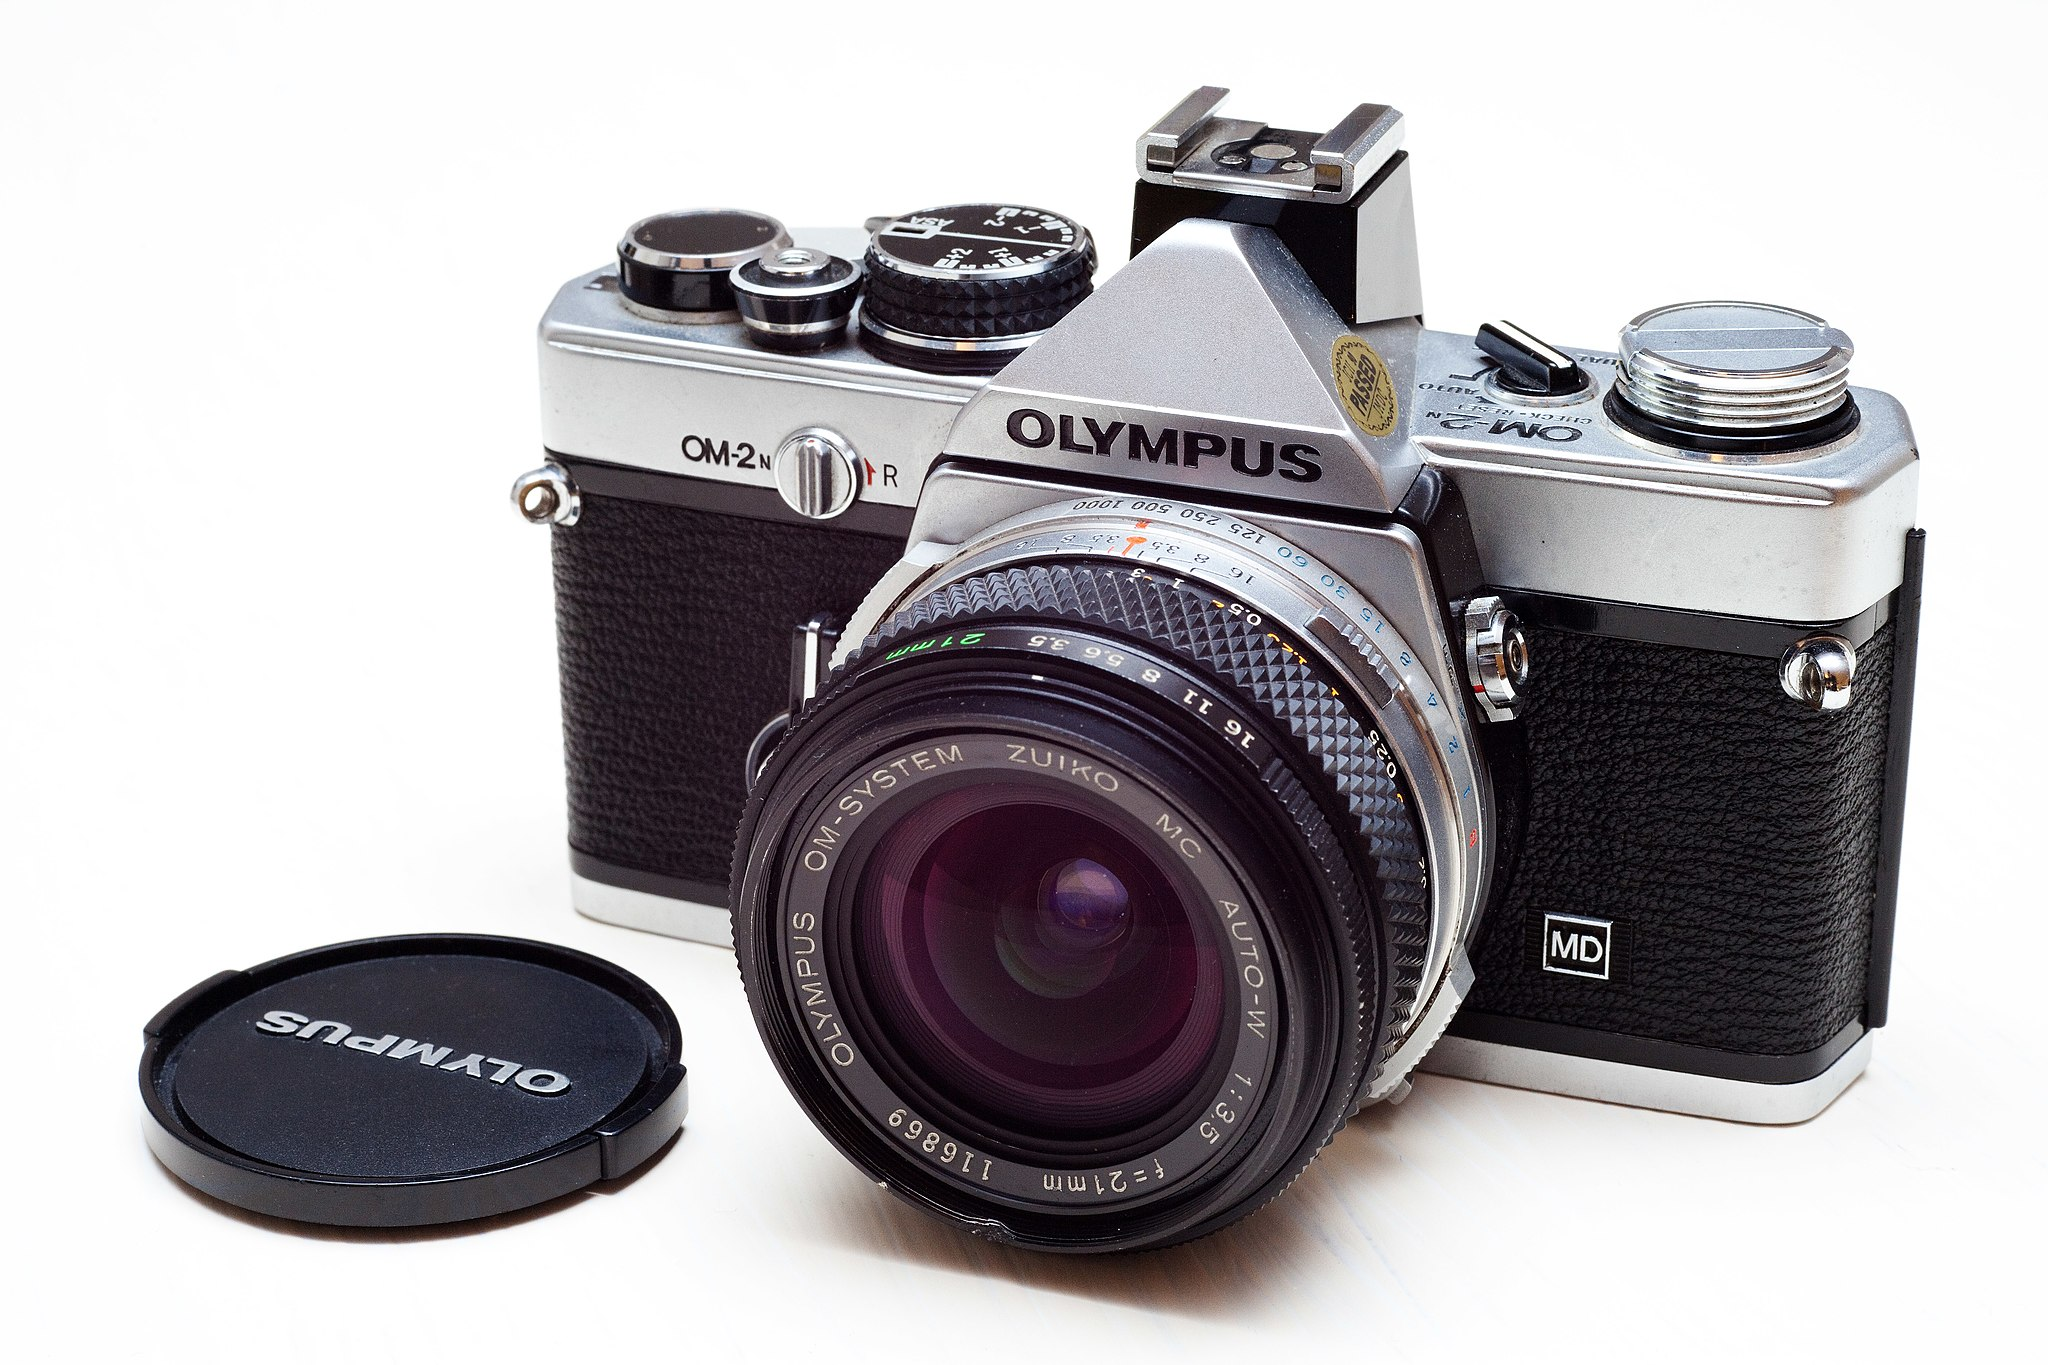 Olympus OM-2 (Pic: Ashley Pomeroy/Wikimedia Commons)